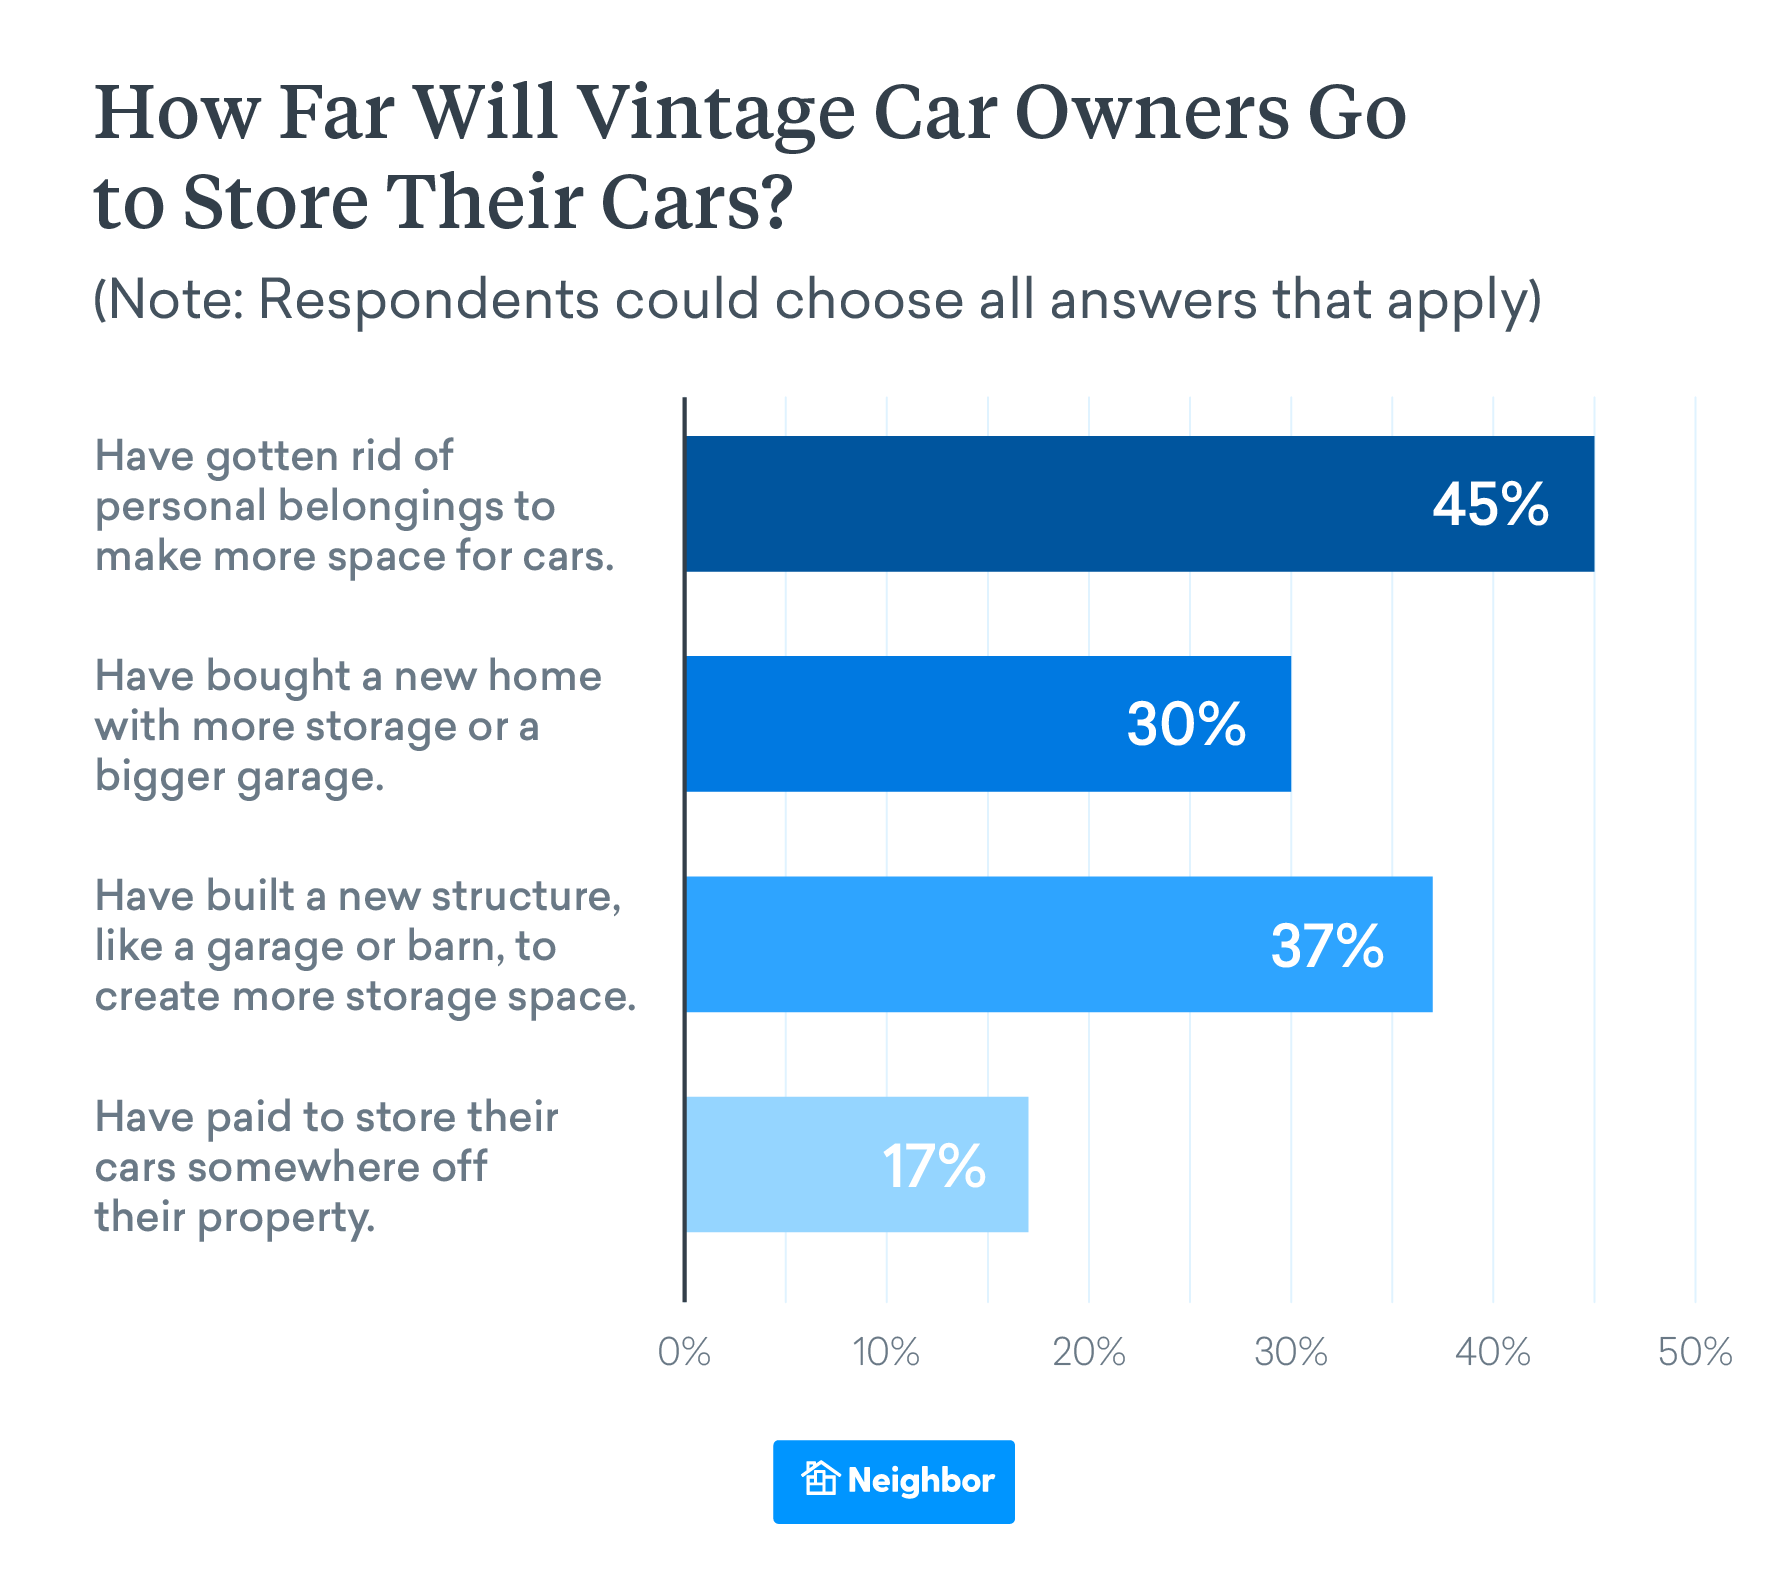 How Far Will Vintage Car Owners Go